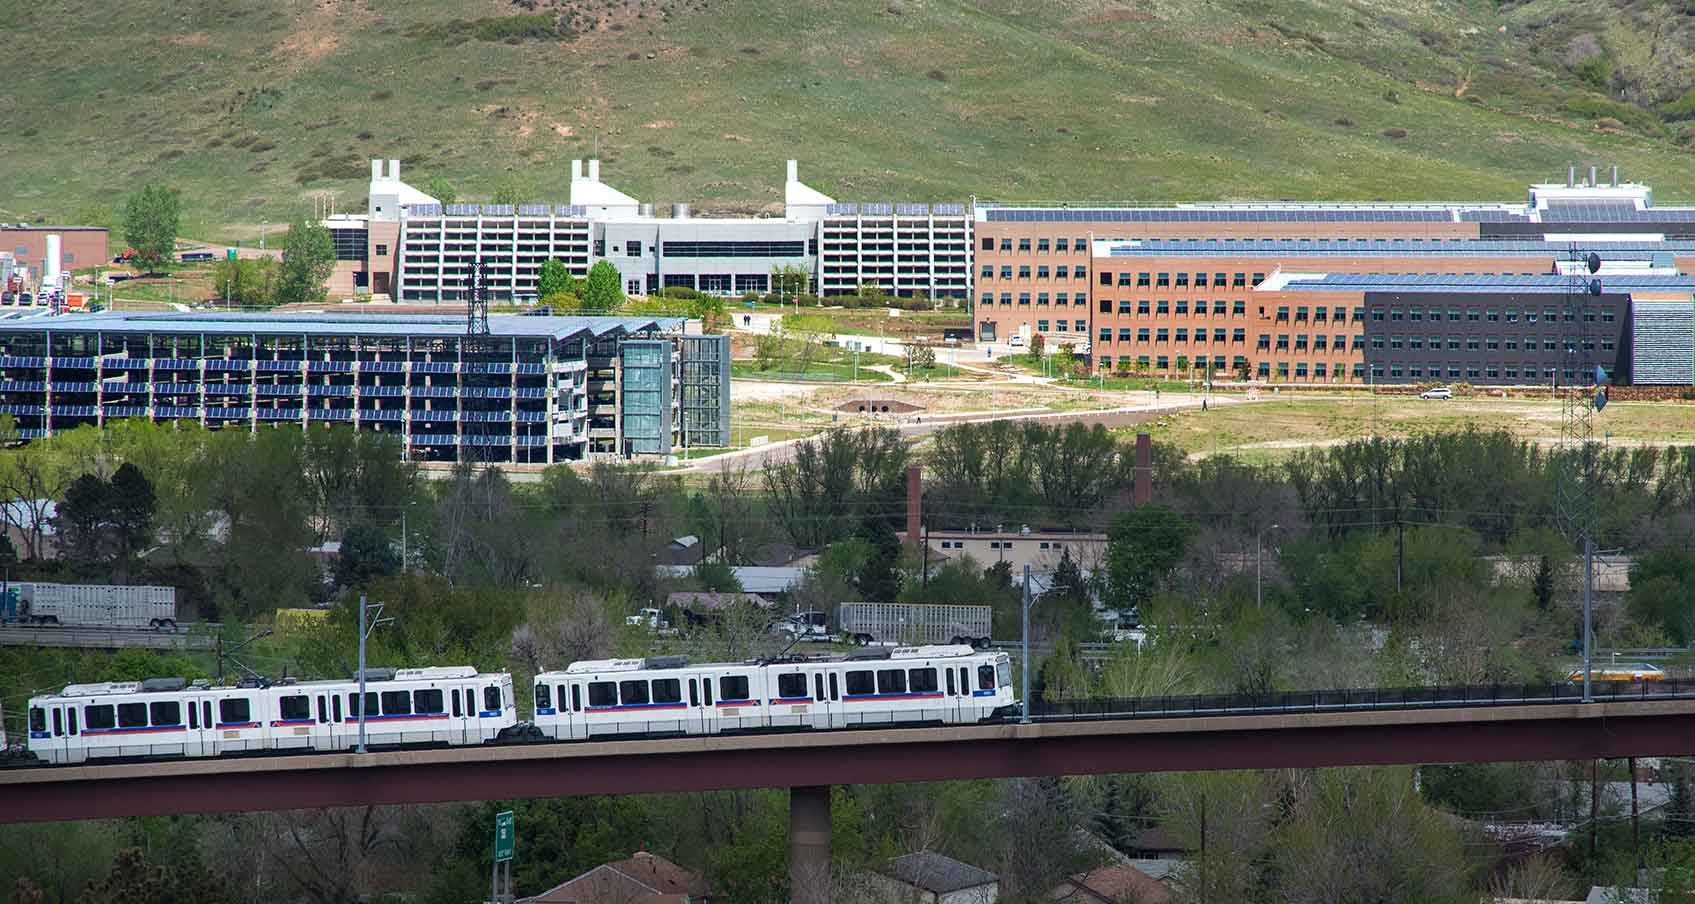 Photo of the light rail in the foreground and NRELs South Table Mountain campus in the background.